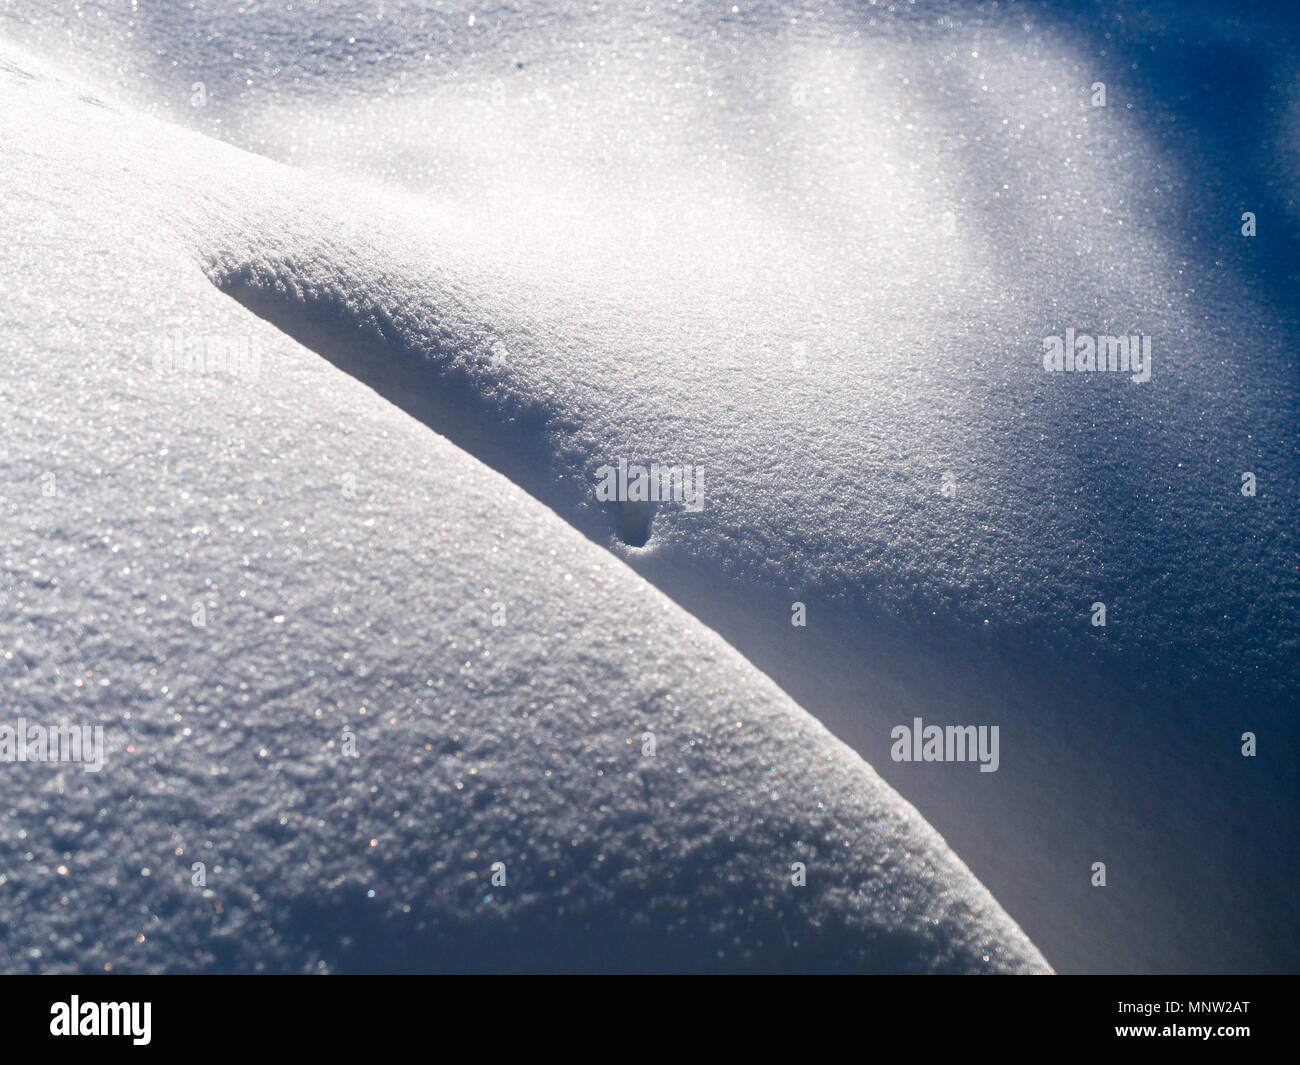 Snowdrift in the sunshine: A deep powdery snow drift makes a smooth pattern in the early morning sunshine. - Stock Image